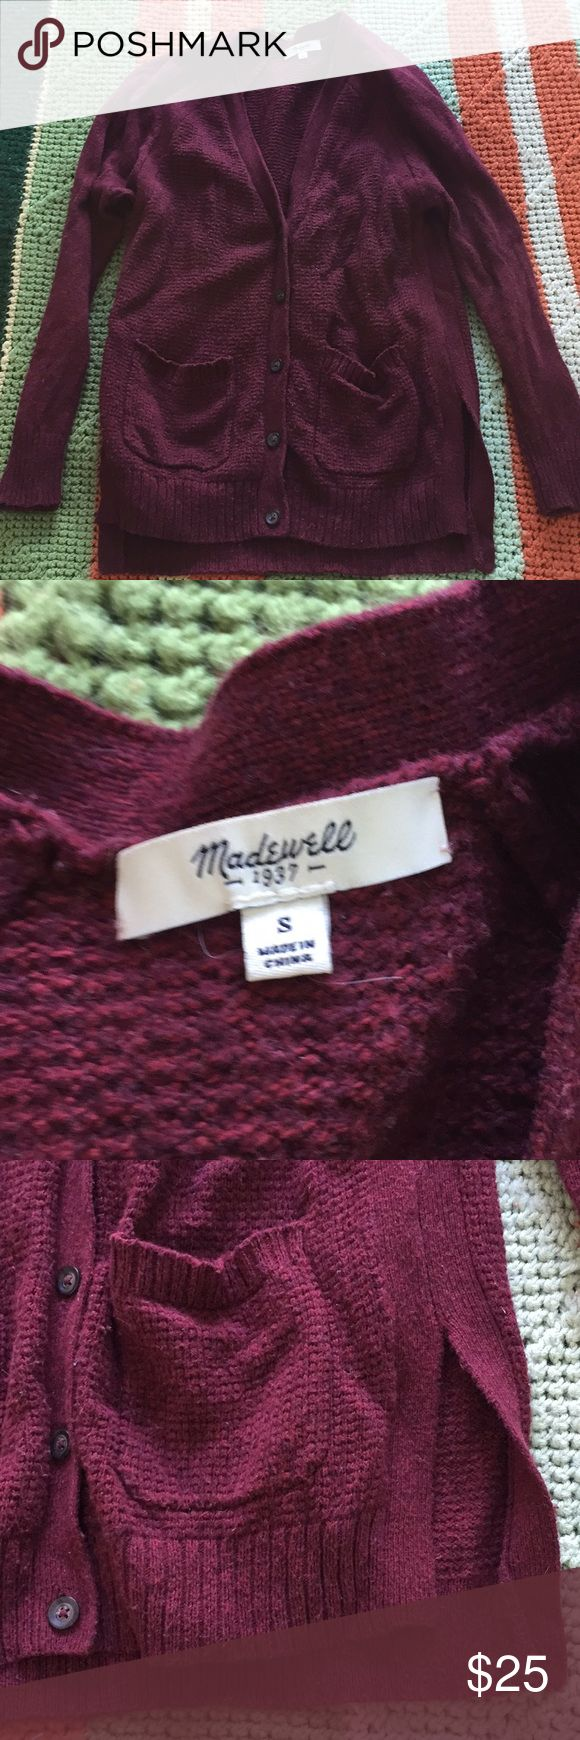 Madewell maroon cardigan Madwrll maroon cardigan. First photo is closest to true color. It's showing up a little brighter/berry in some photos but it is definitely more of a maroon on the very slightly pink side. Does have some pilling, still in good condition. Madewell Sweaters Cardigans